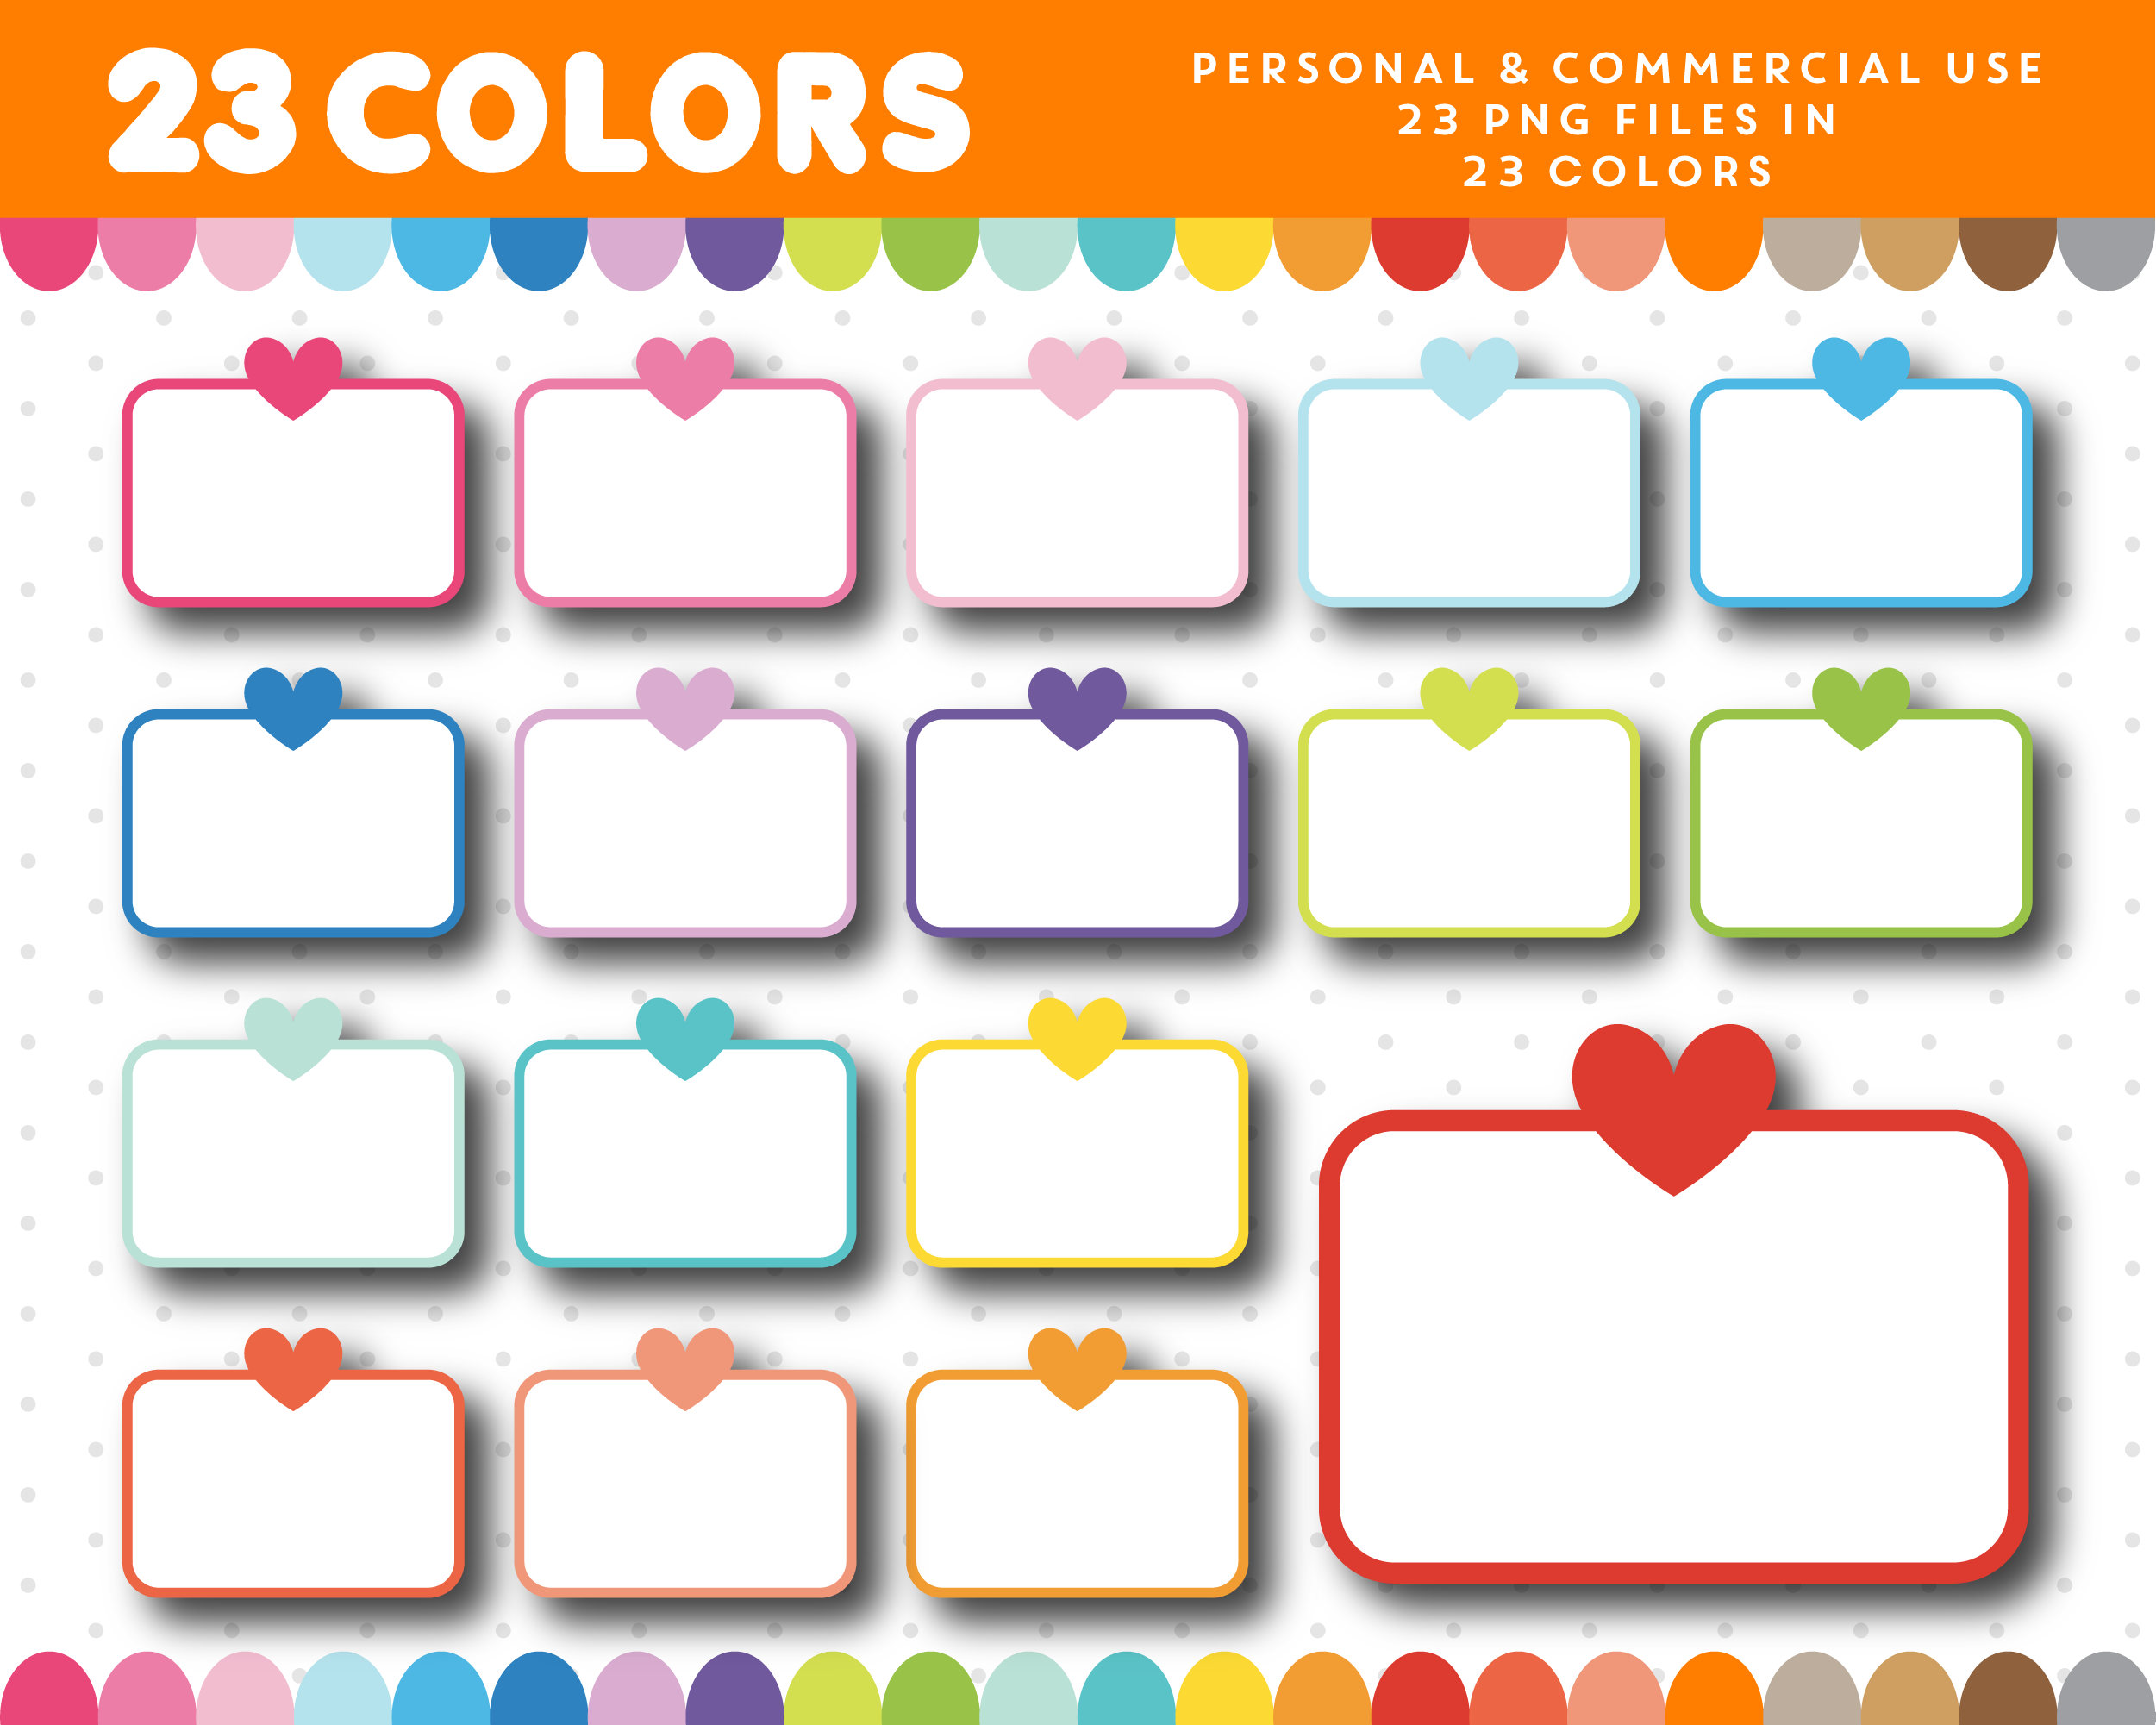 2501x2001 Half Heart Box Clipart, Half Sticker Box Clip Art, Planner Box